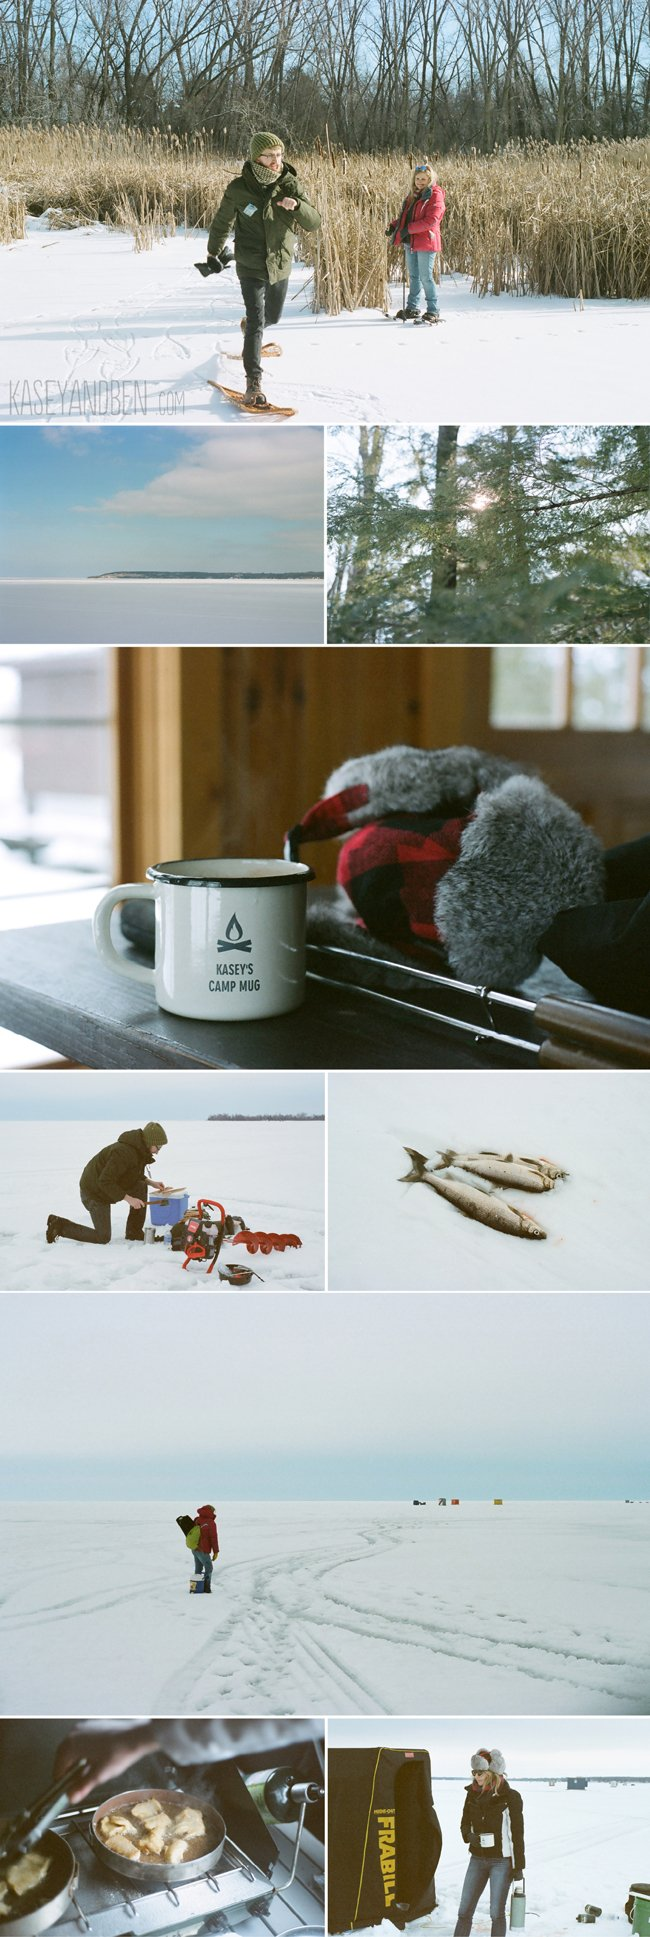 Door-County-Midwest-Ice-Fishing-Hiking-Snowshoeing-Snow-Fish-Winter-Sturgeon-Bay-Green-Bay-Wildlife-Sanctuary